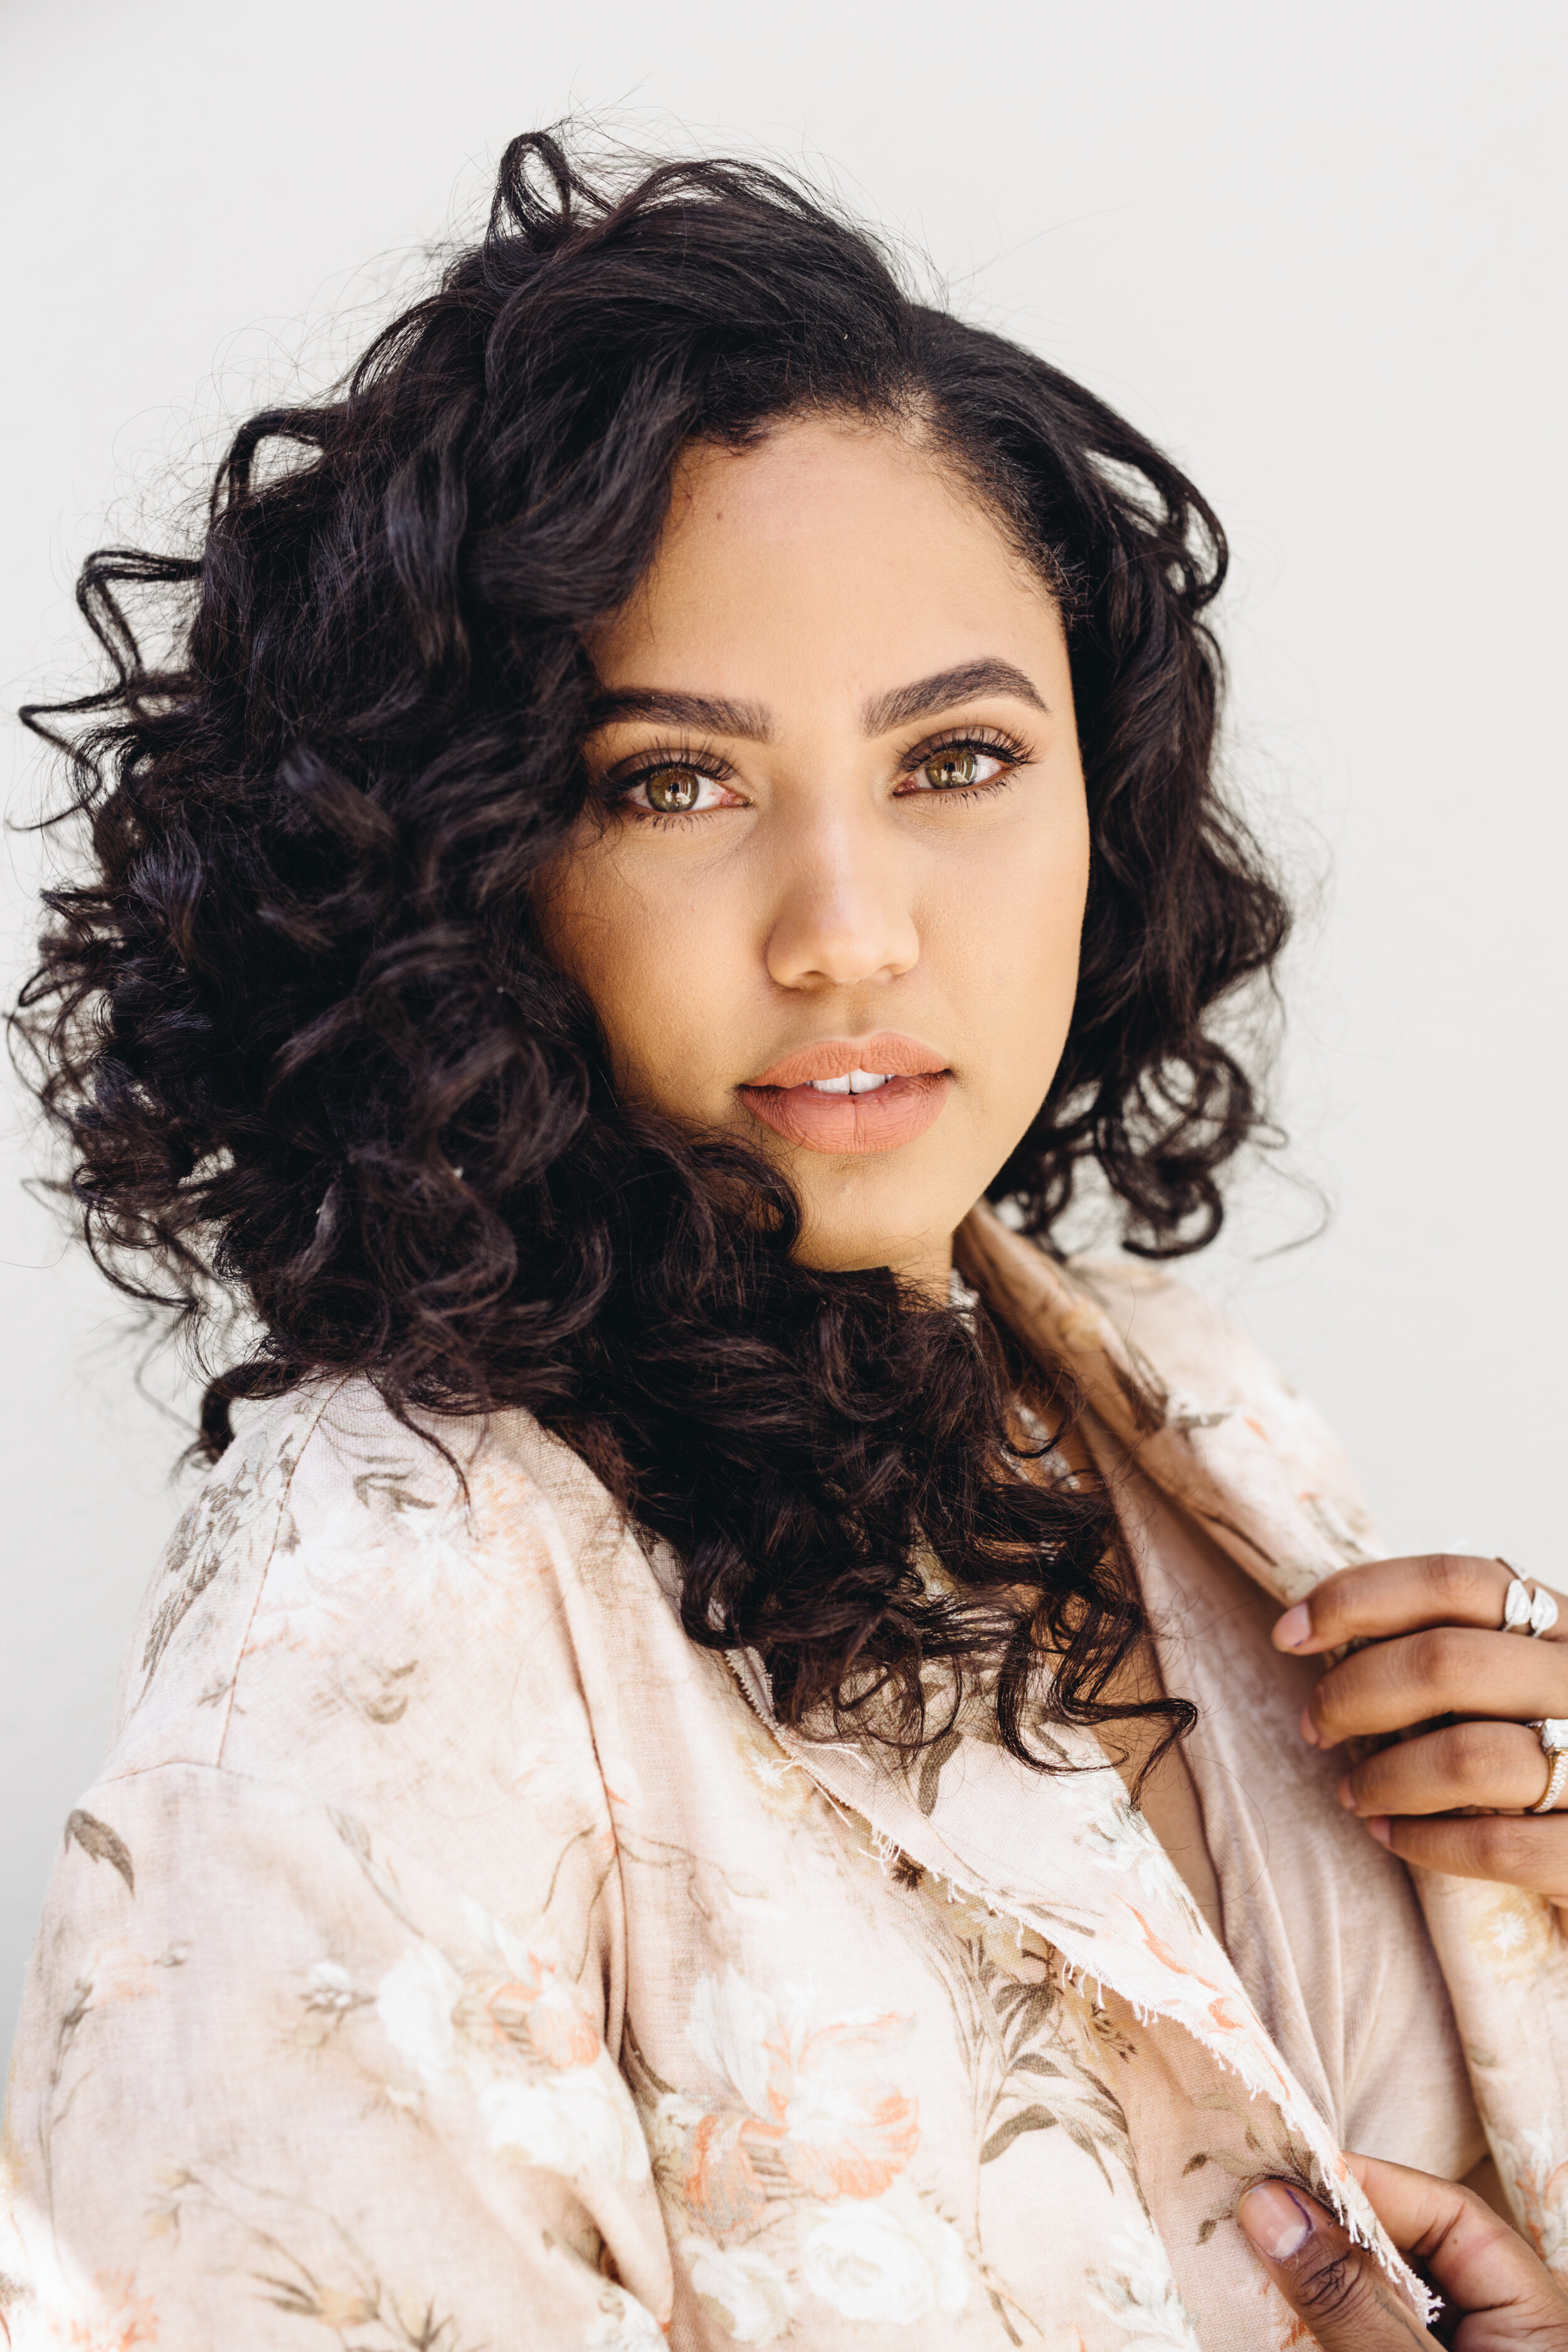 """AYESHA CURRY - Ayesha Curry is a chef, restauranteur, New York Times best-selling author, host and executive producer of ABC's """"Family Food Fight,"""" and was featured on the prestigious 30 Under 30 list by Forbes Magazine"""